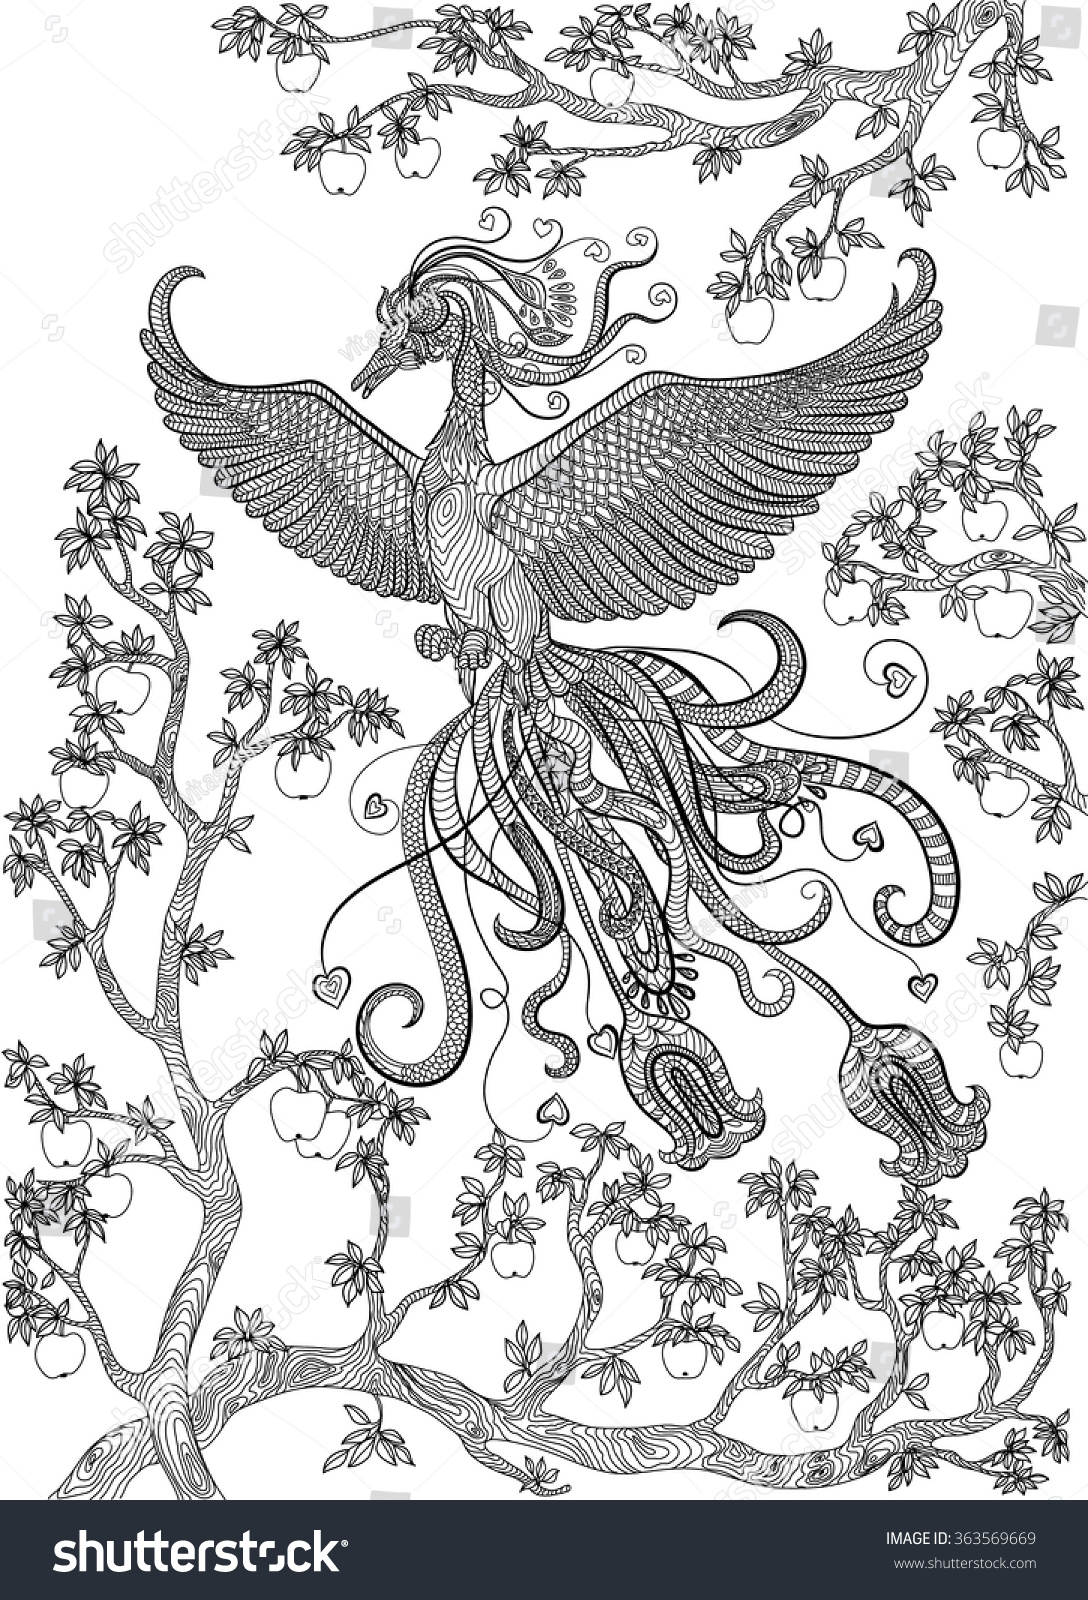 Coloring book page apple tree - Hand Drawn Bird Firebird On A Branch Apple Tree Coloring Page